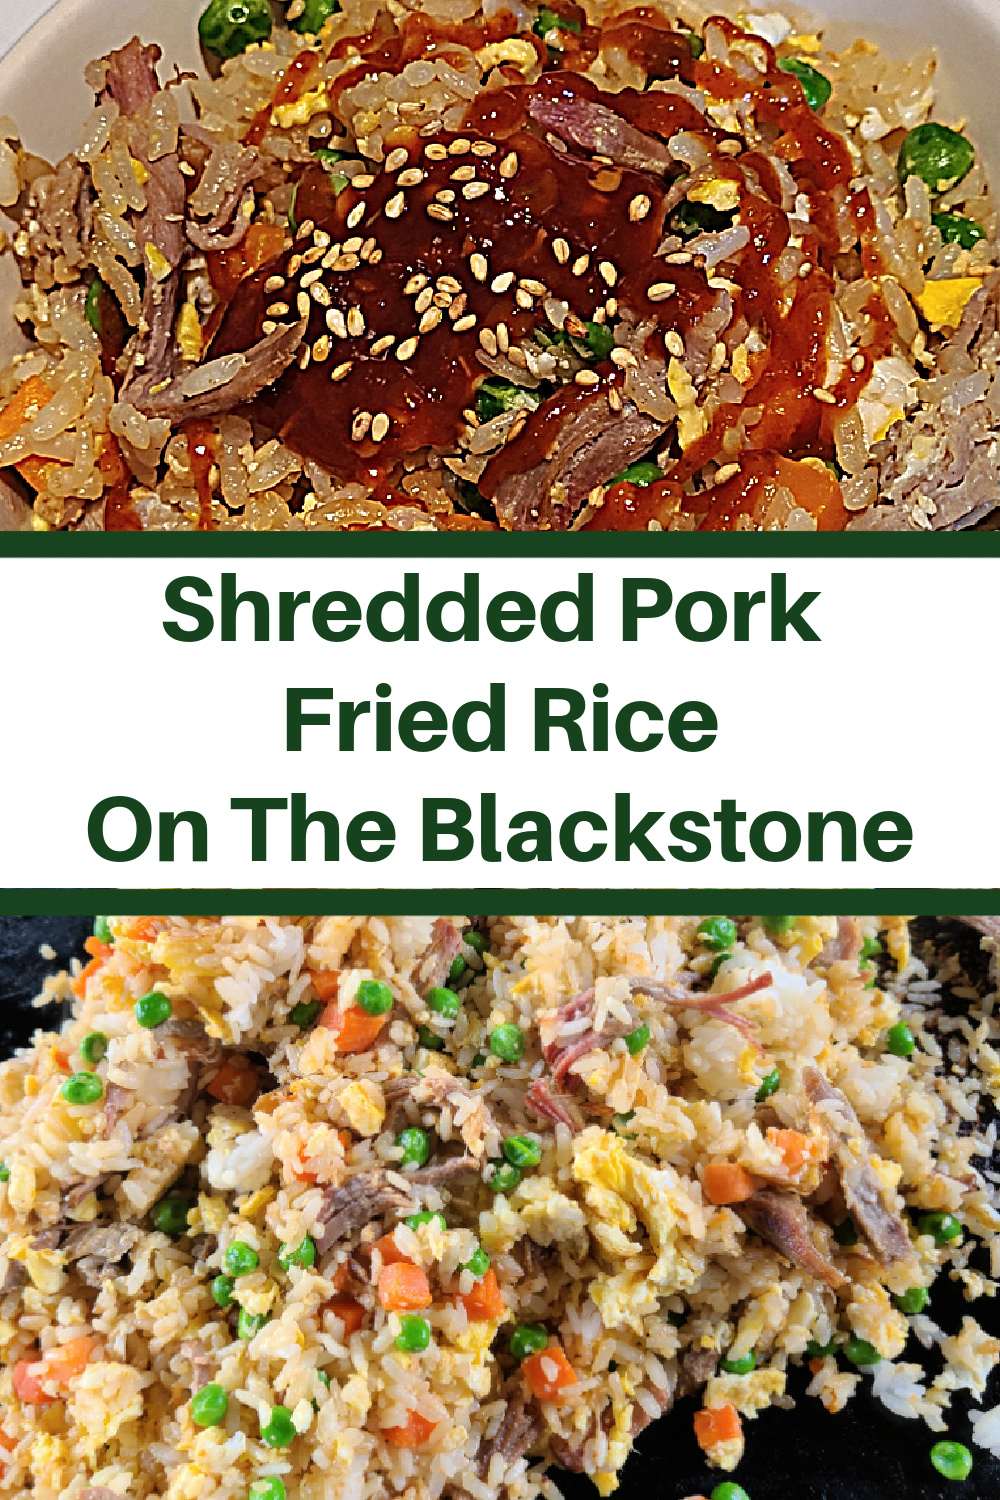 This Shredded Pork Fried Rice Recipe On The Blackstone is perfect to make with leftover smoked pulled pork! The smoke flavor adds to the fried rice! Fried rice is an easy weeknight dinner that is easy to make on the Blackstone griddle!